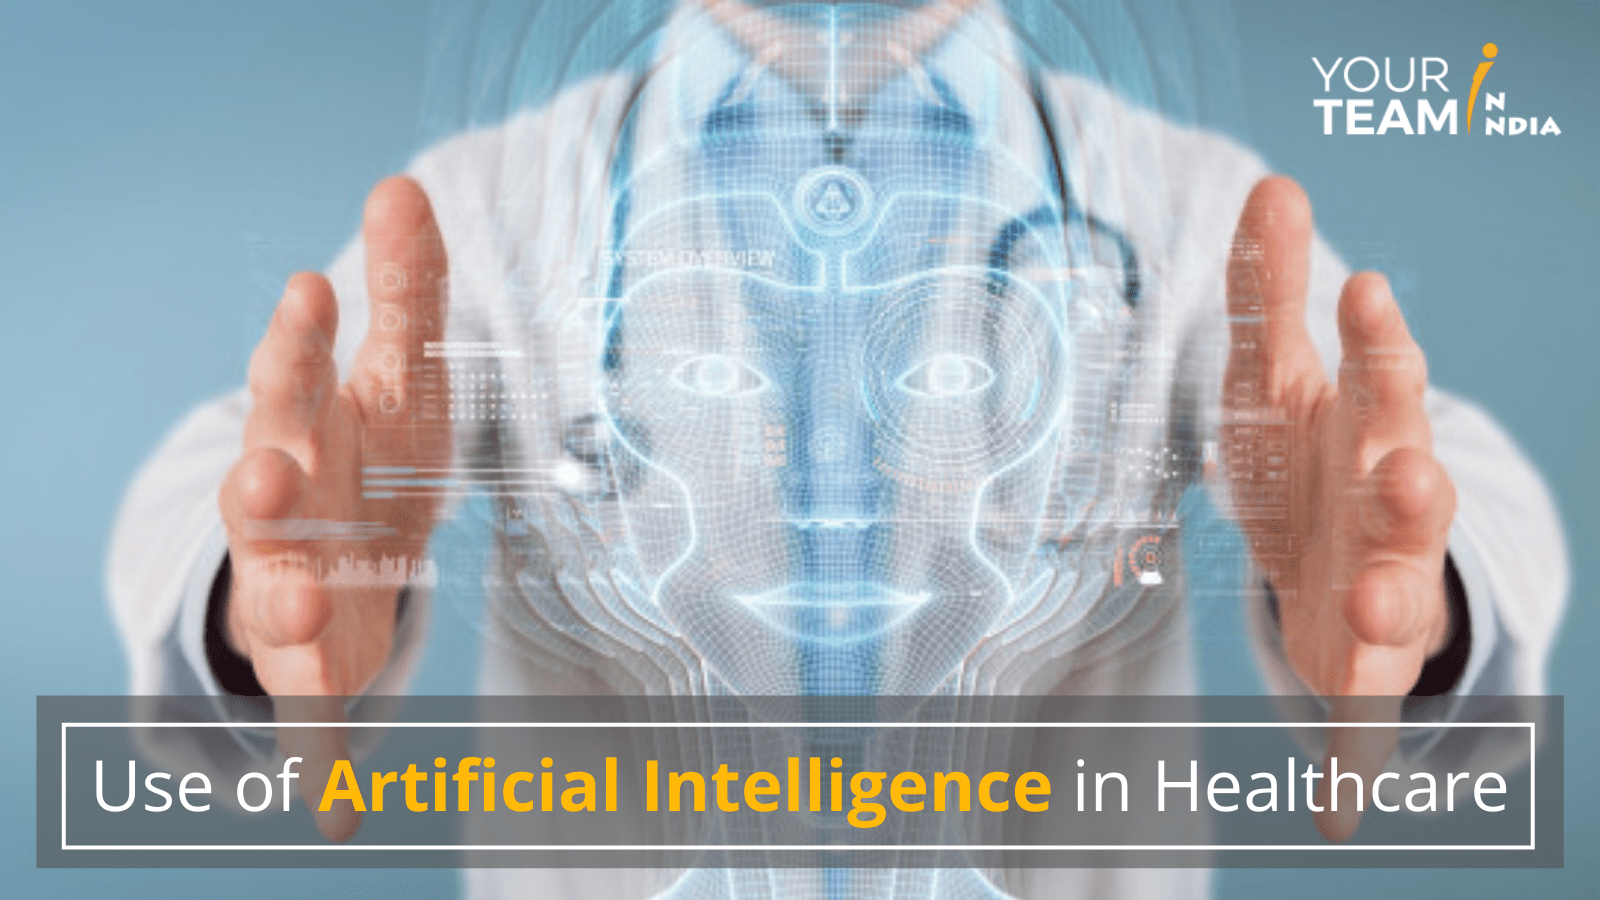 Use of Artificial Intelligence in Healthcare